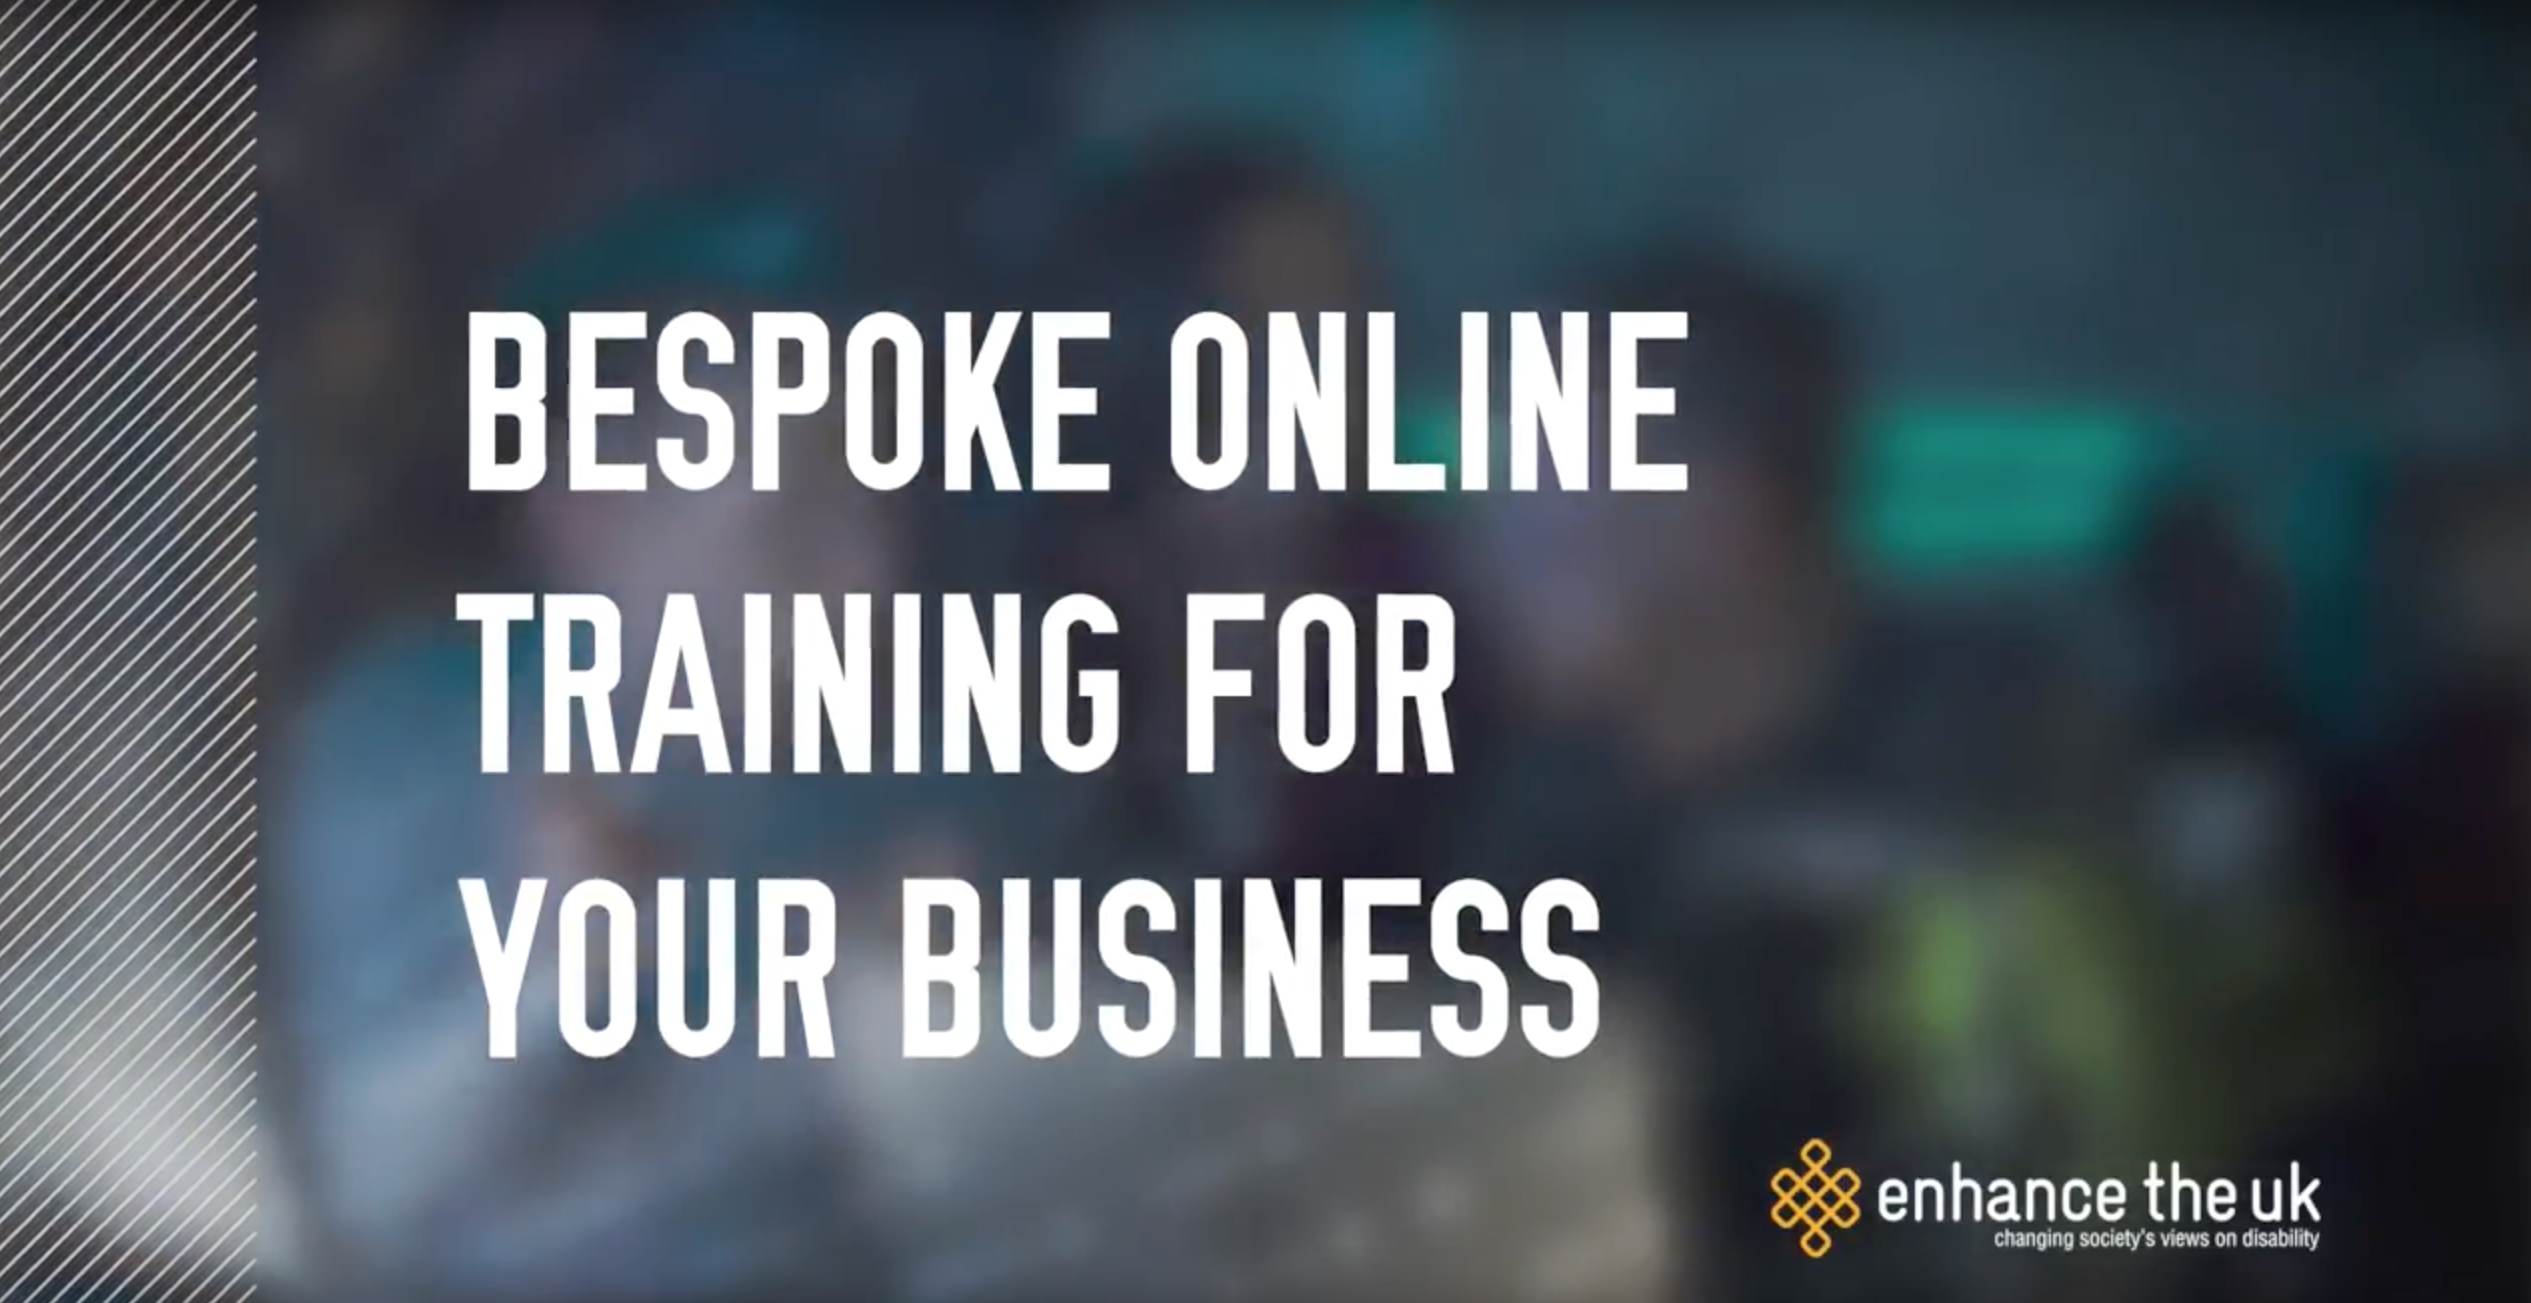 text reading 'bespoke online training for your business'